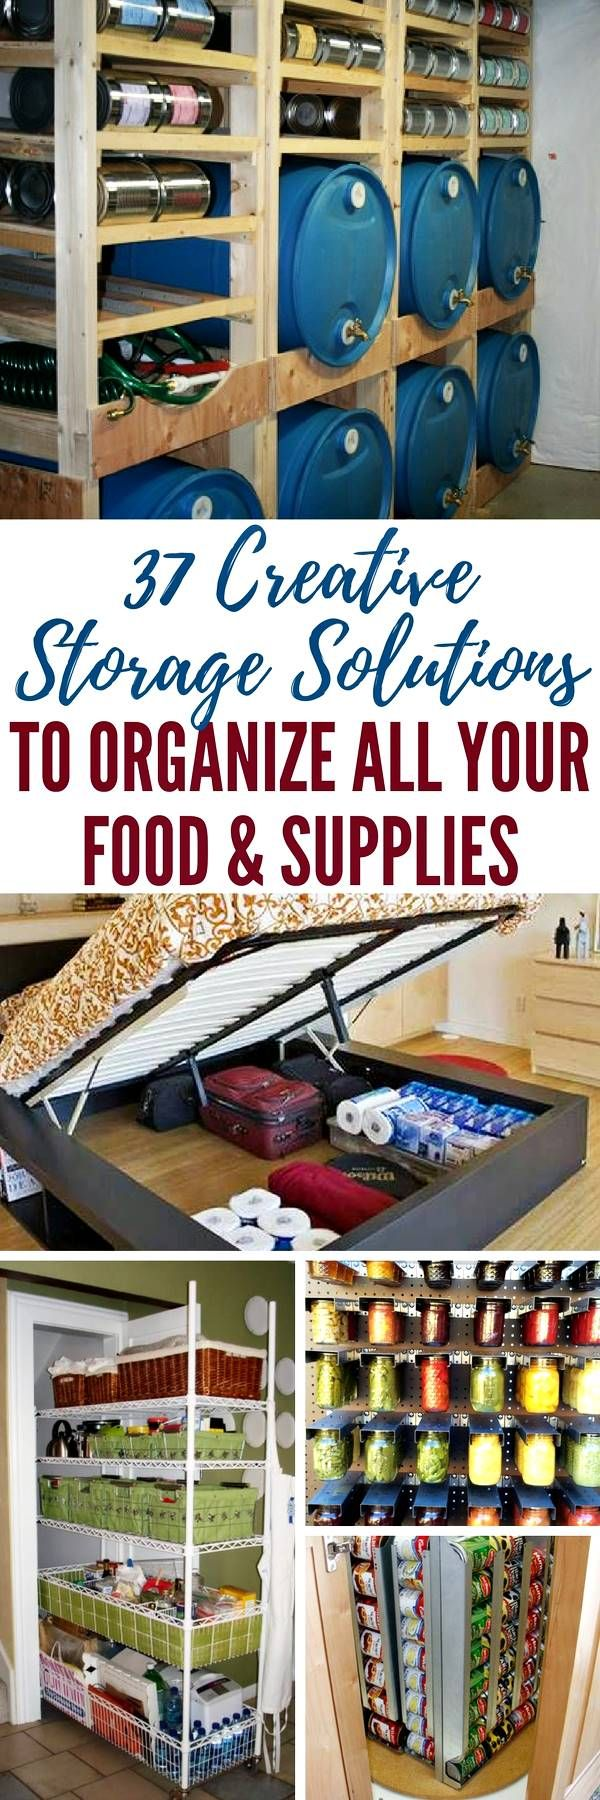 37 Creative Storage Solutions to Organize All Your Food